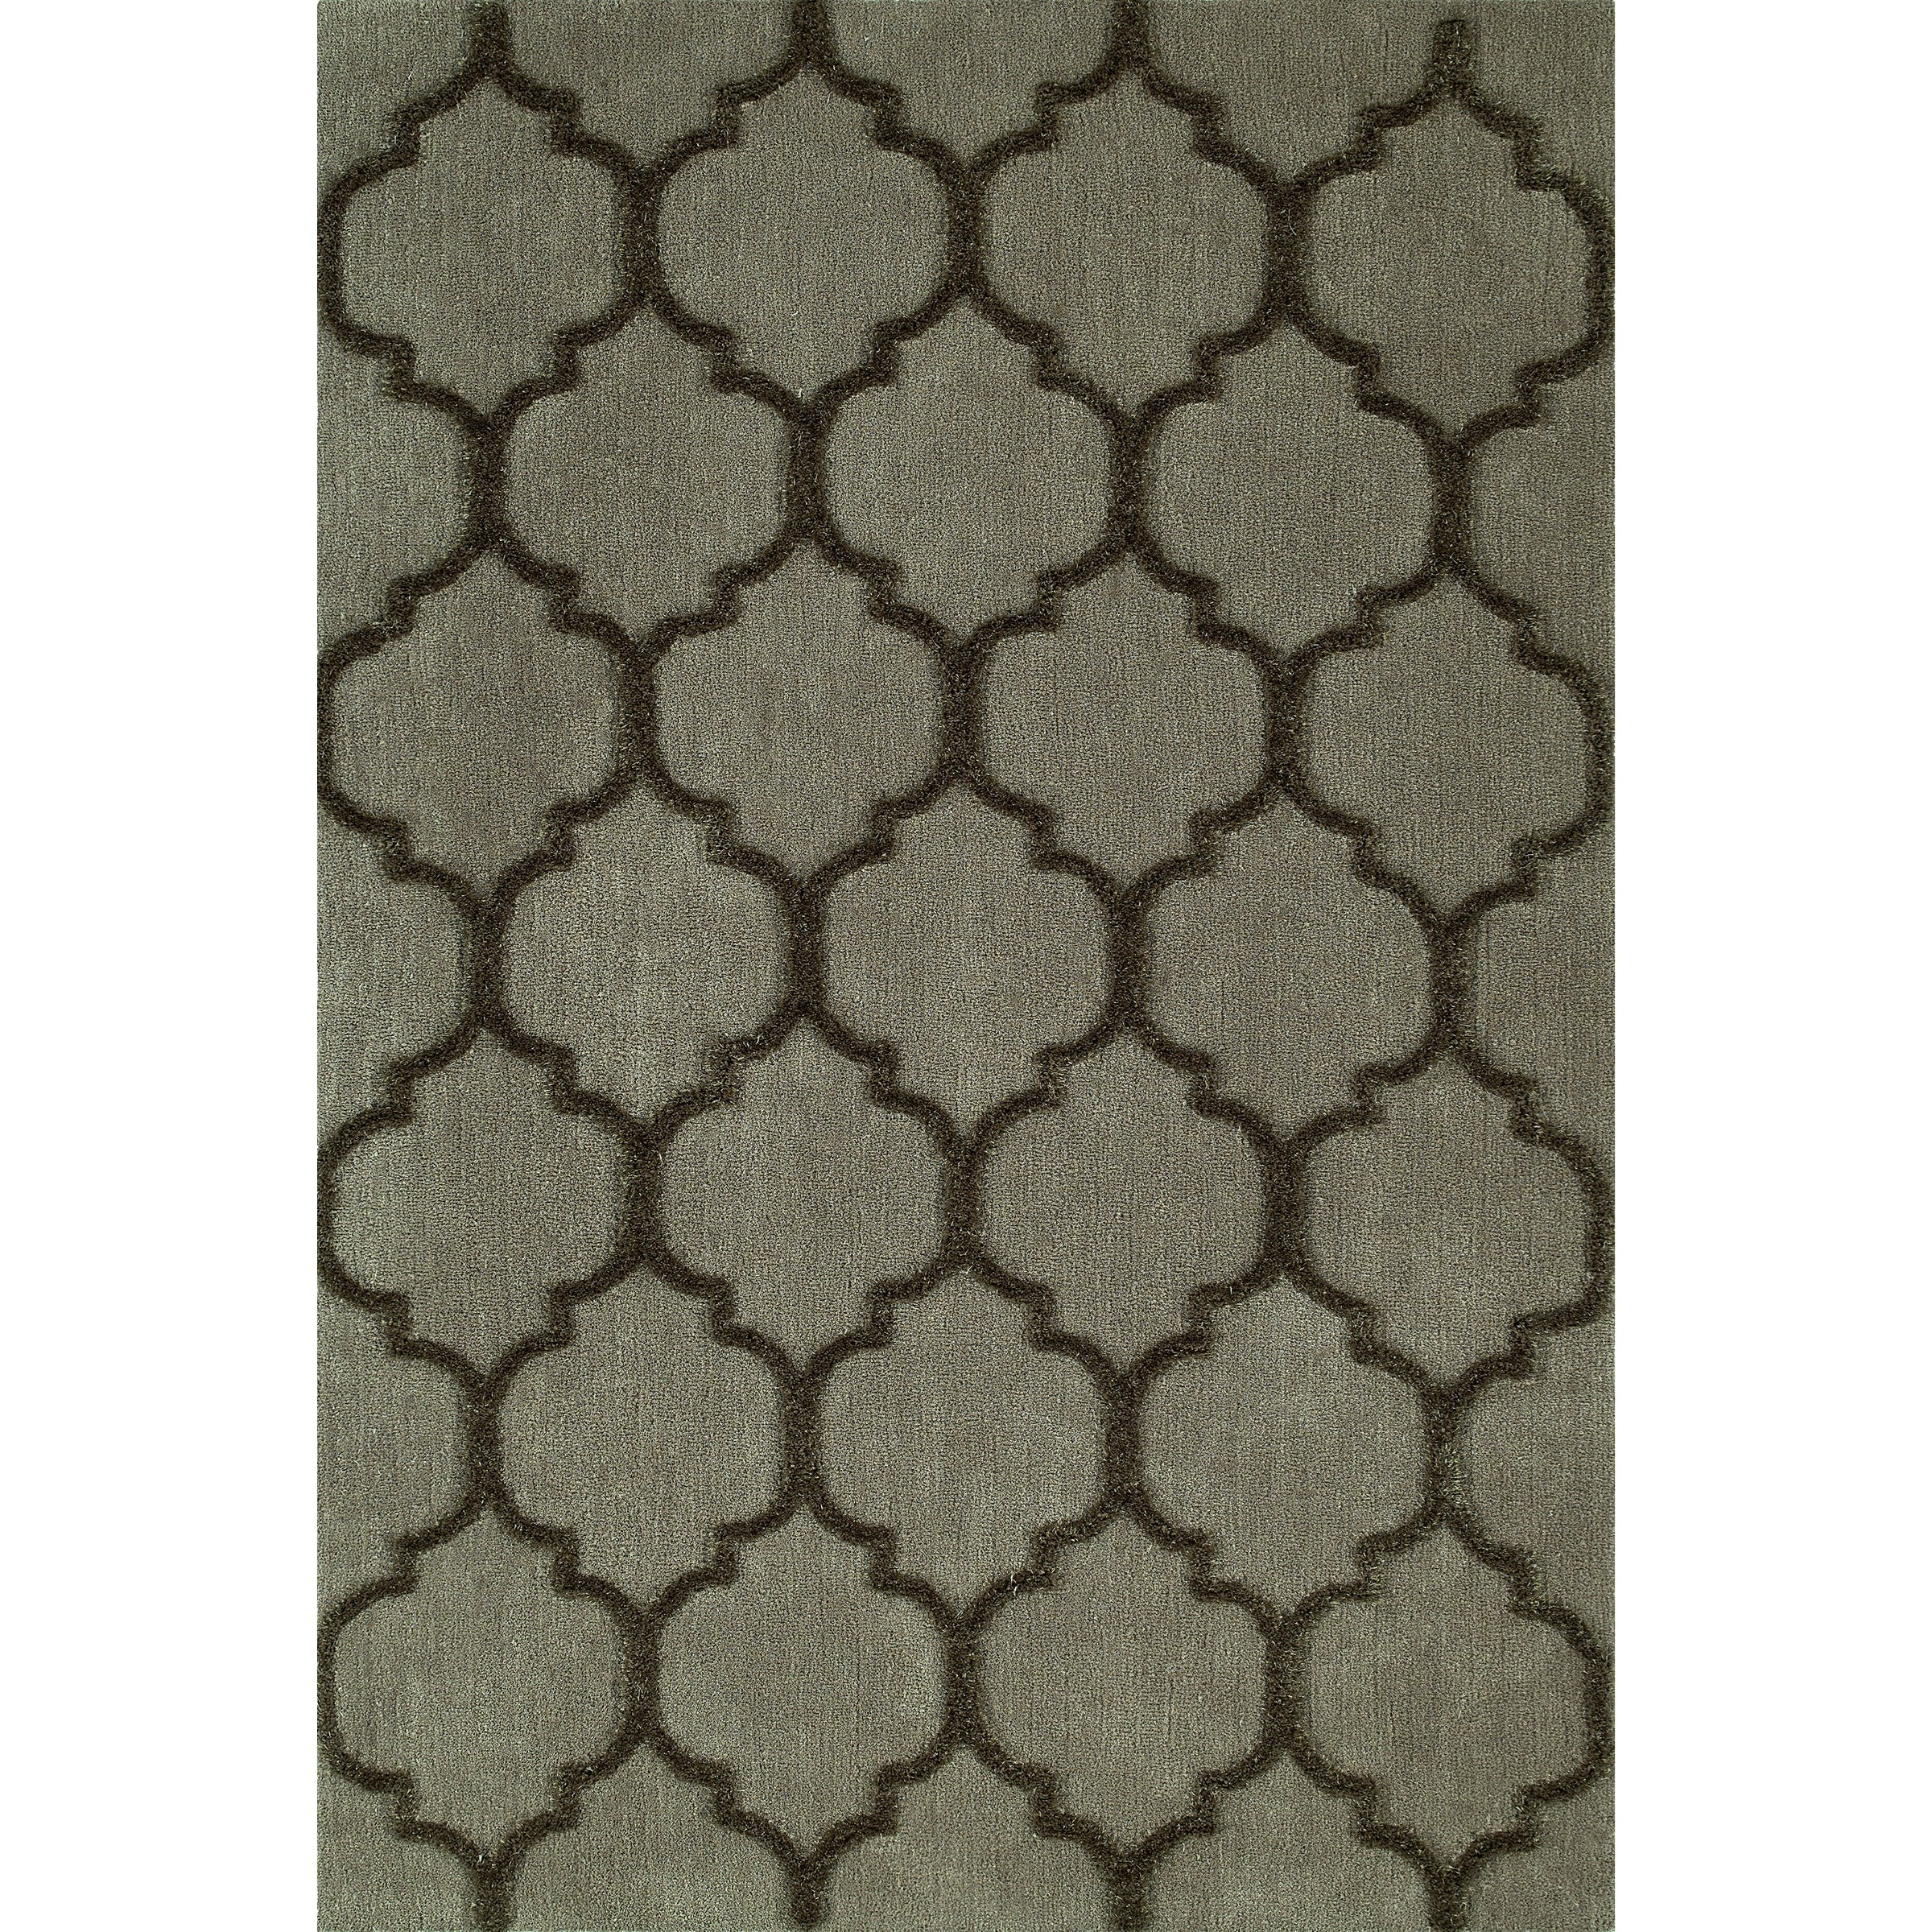 Dakota Taupe 9'X13' Area Rug by Dalyn at Arwood's Furniture